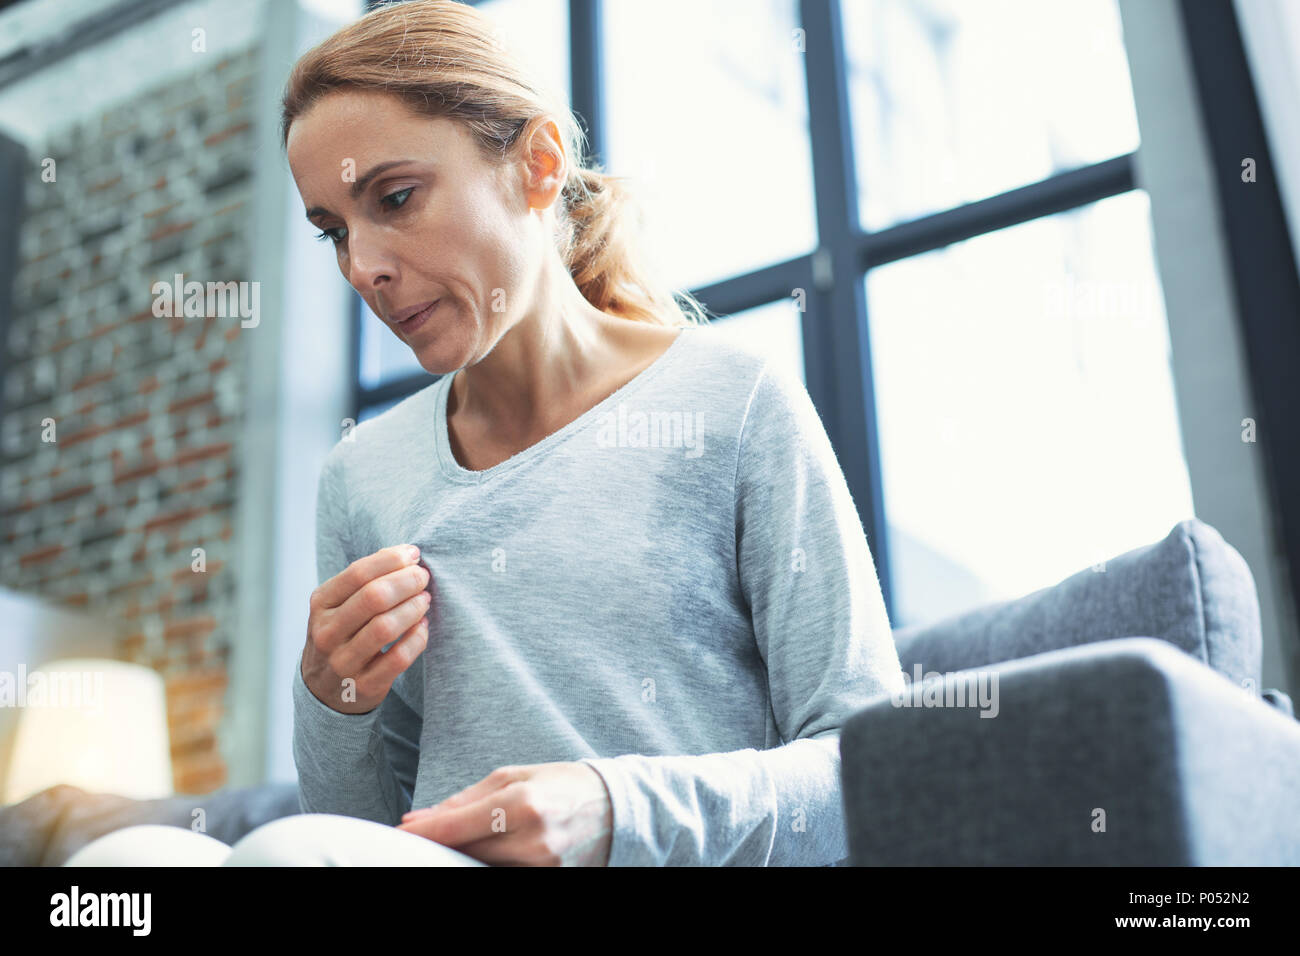 Exhausted mature woman entering menopause - Stock Image